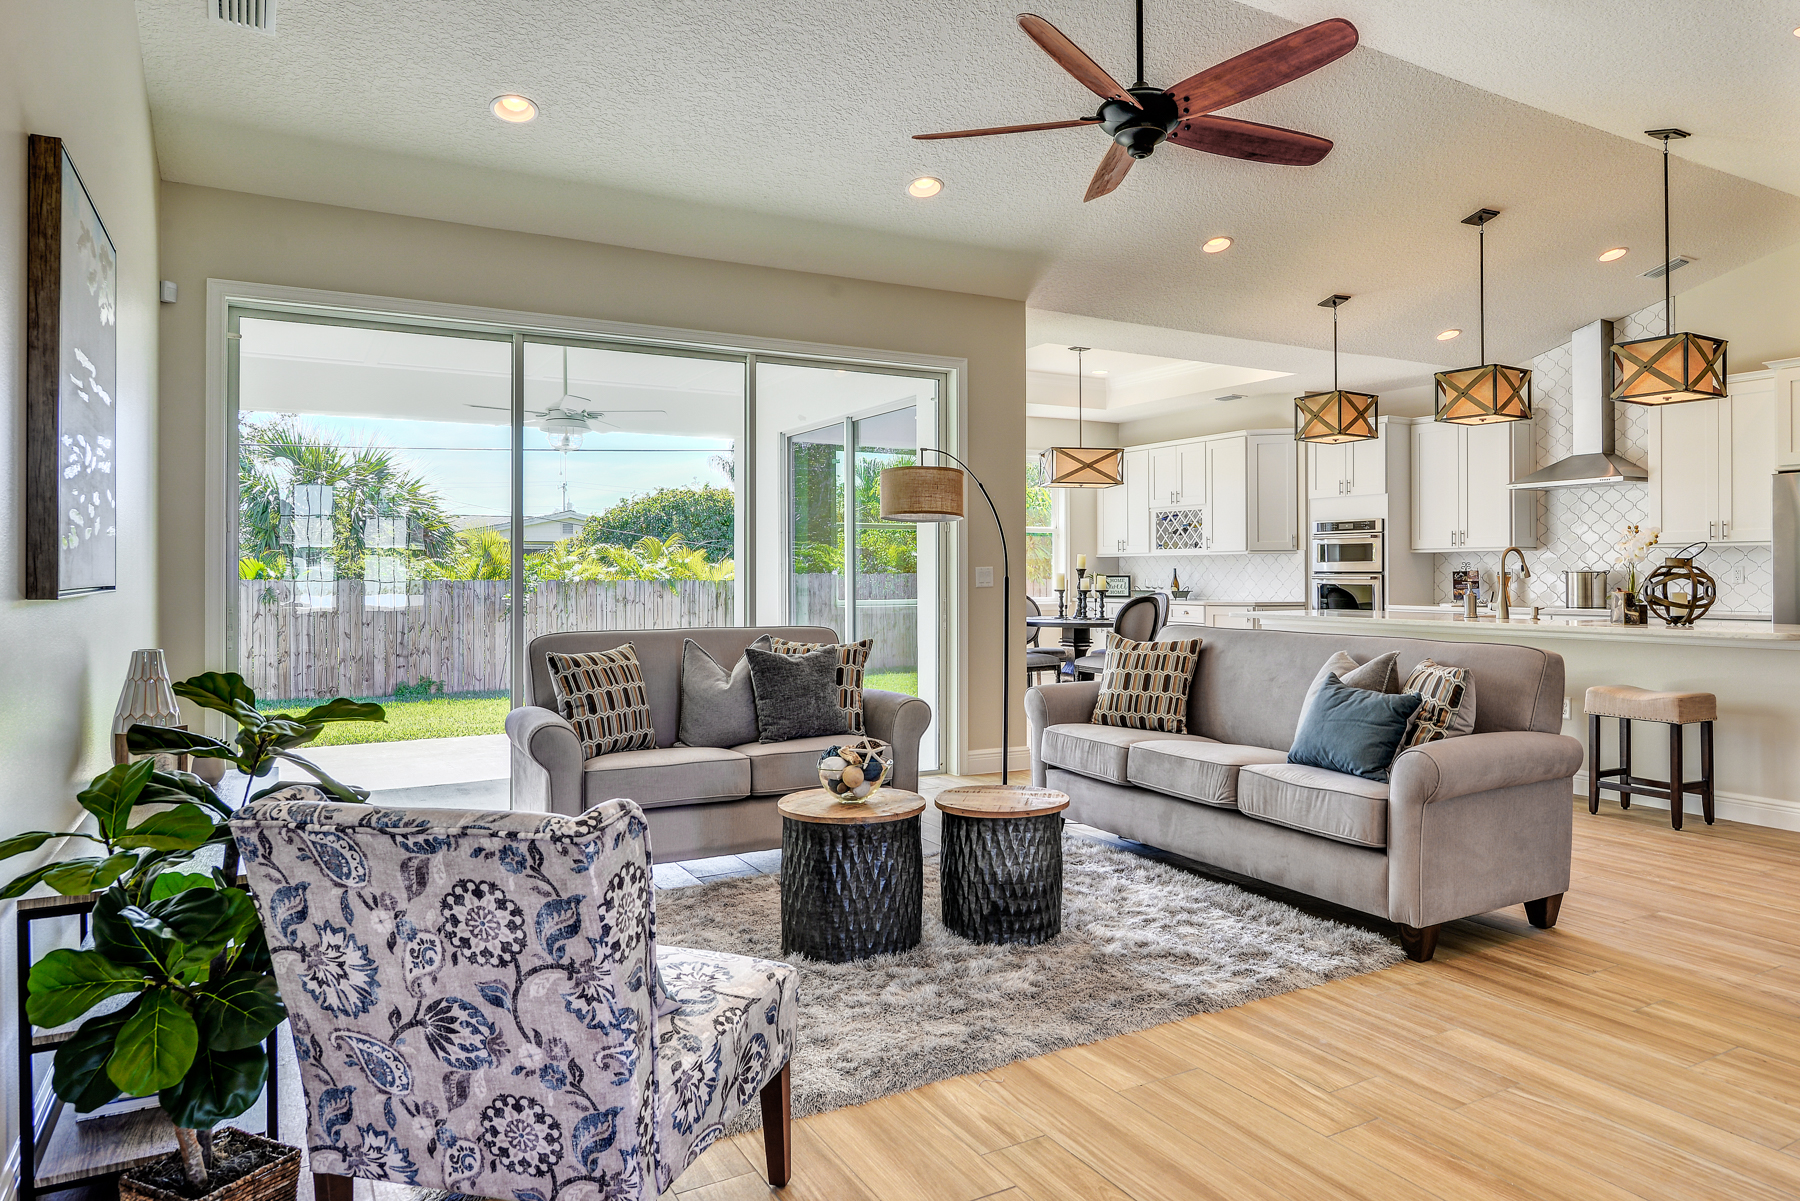 Model Home Staging Melbourne Beach